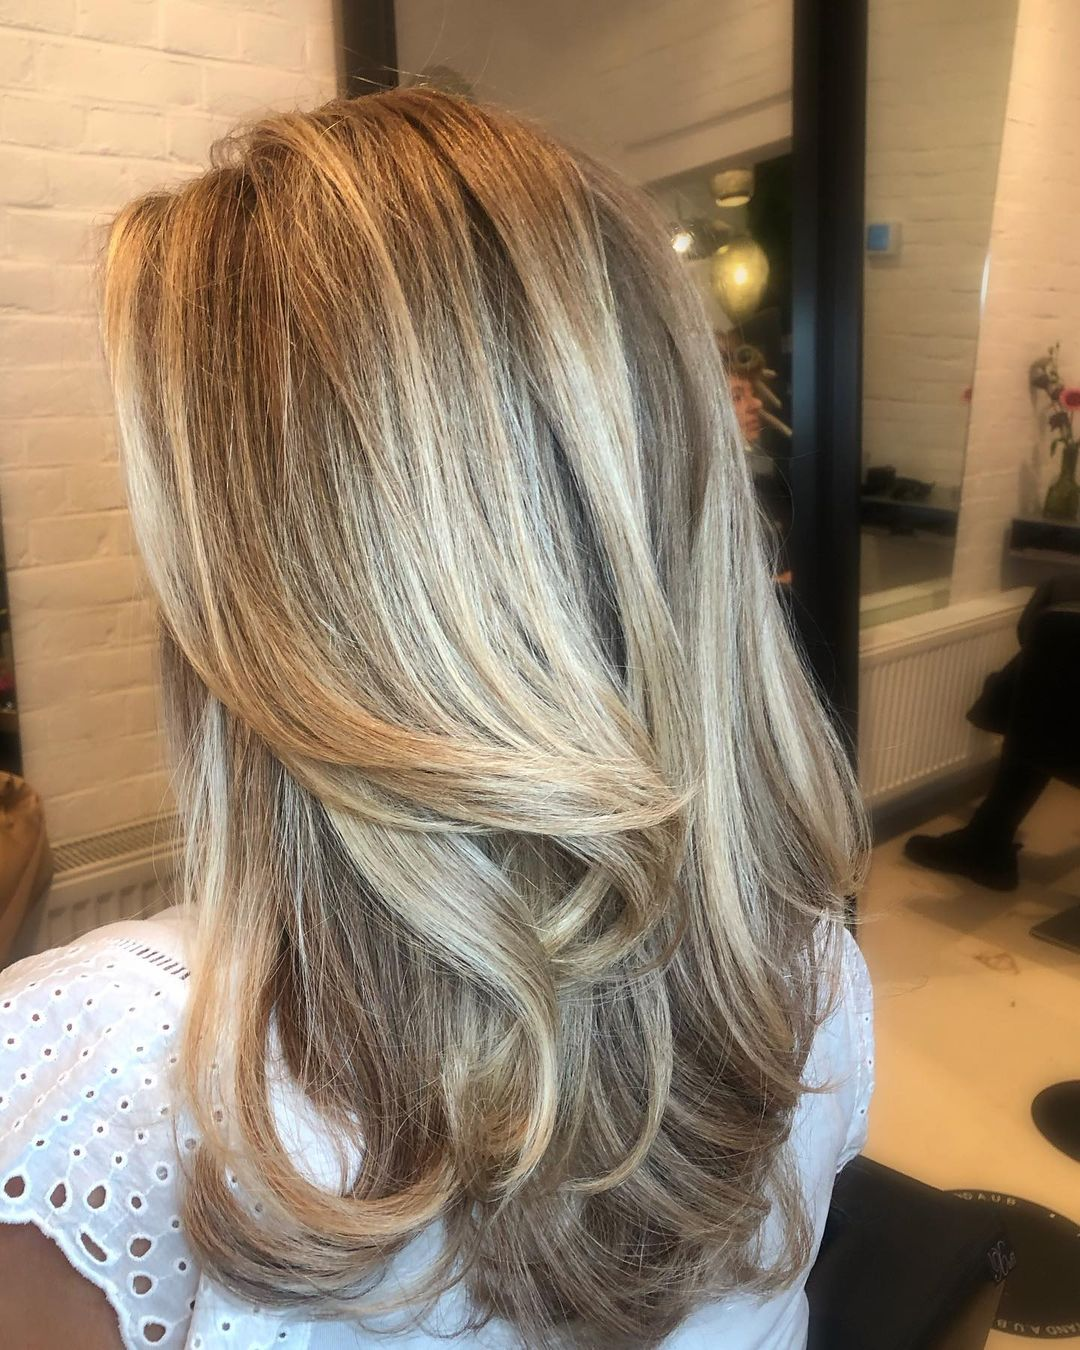 49 Stunning Brown Hair With Highlights For 2021